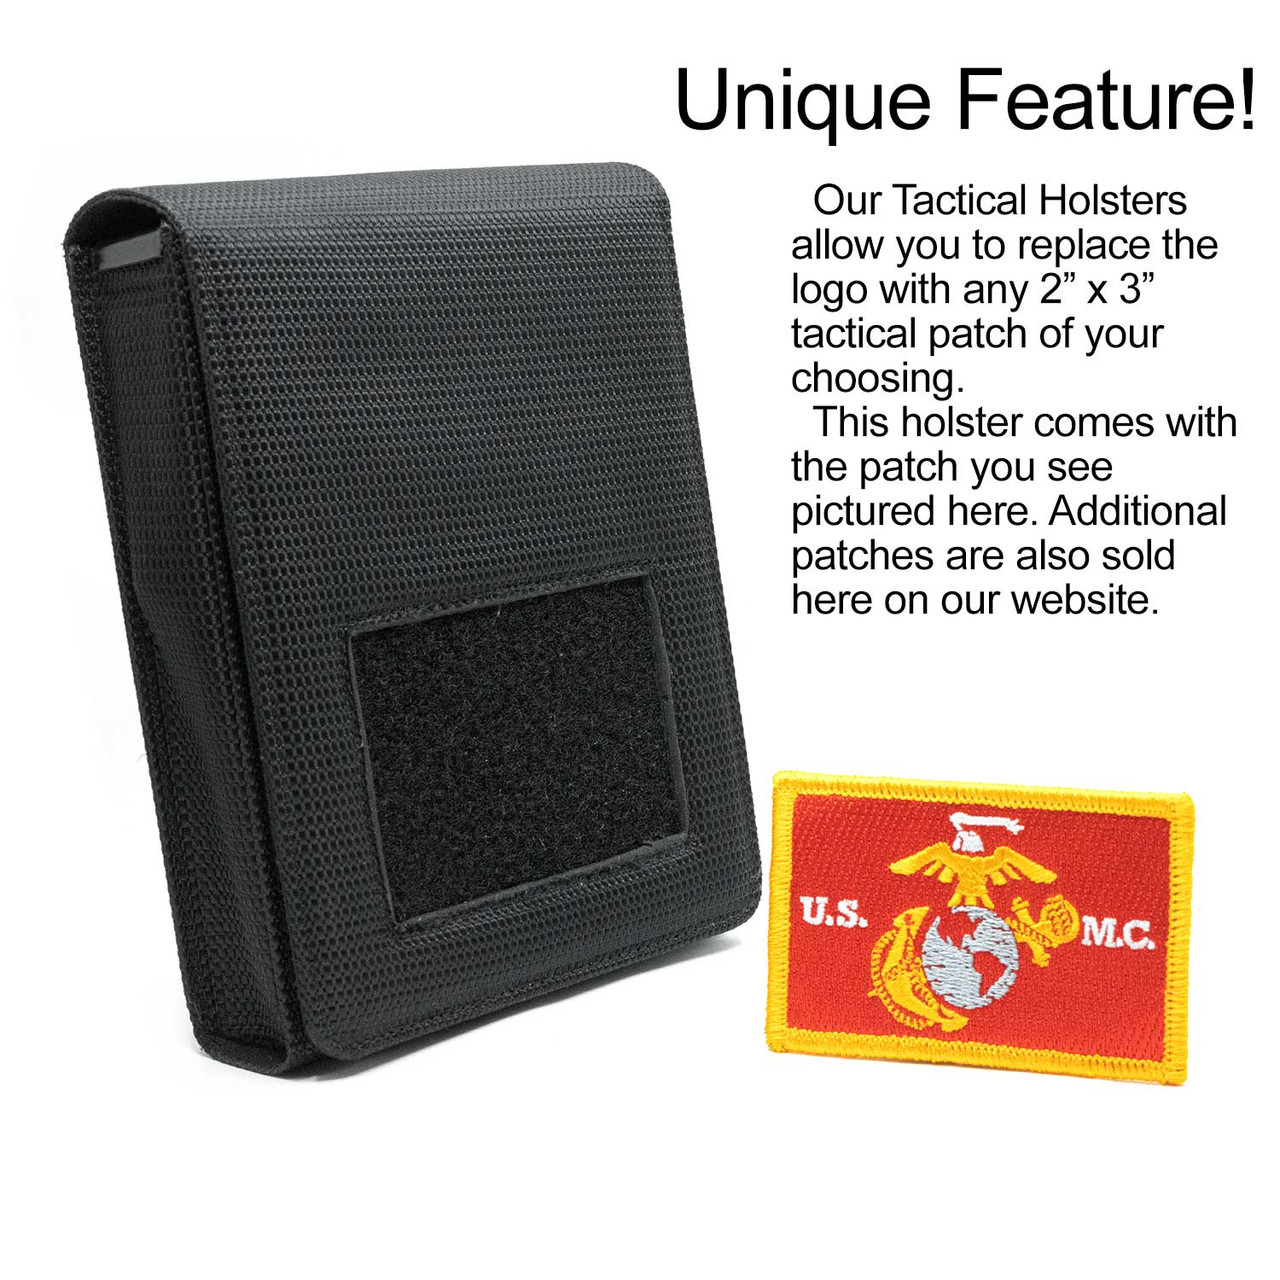 Glock 19X Marine Corps Tactical Patch Holster